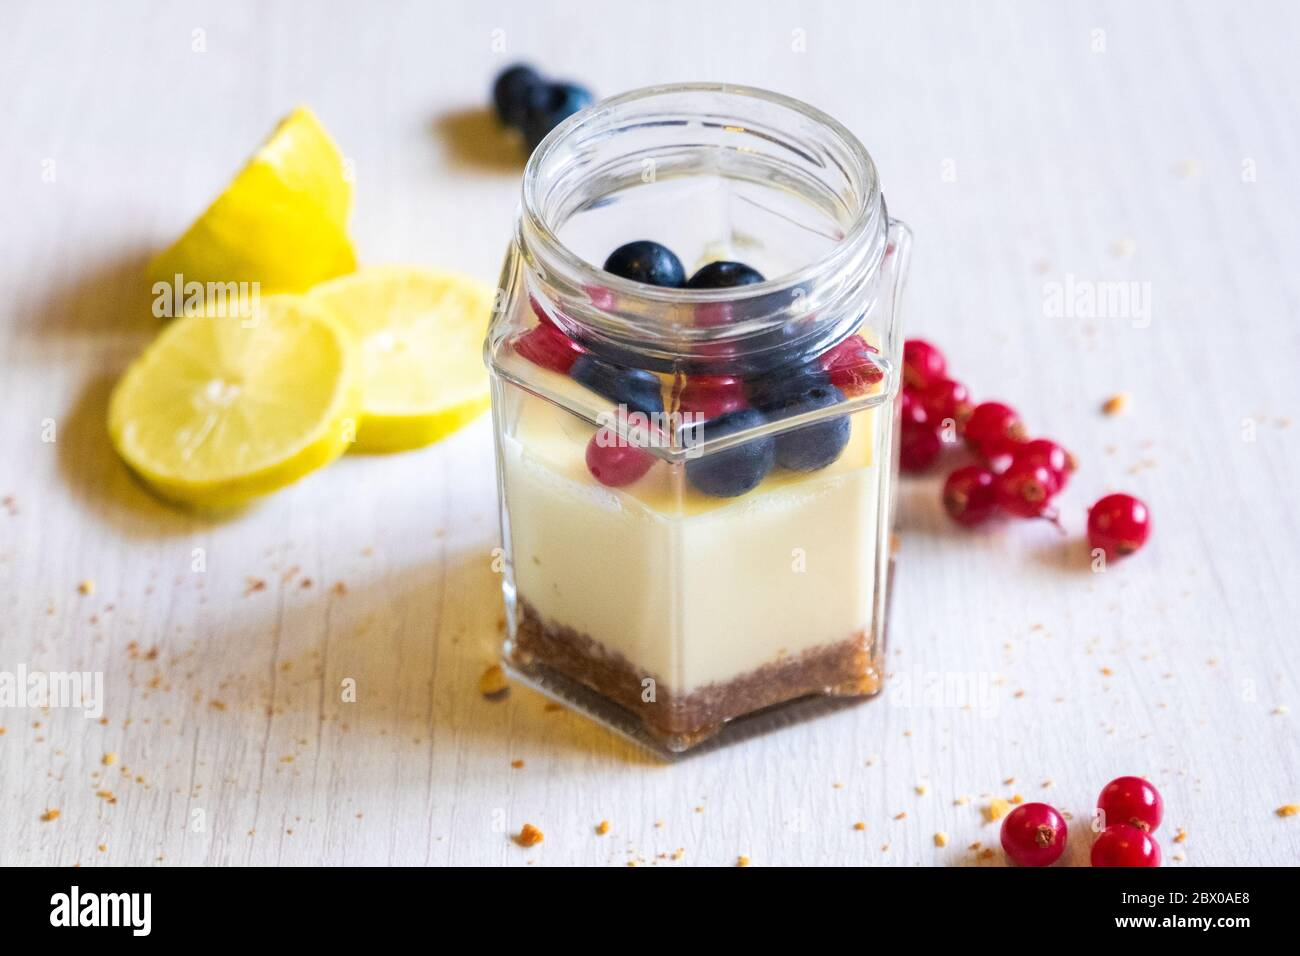 Sous Vide Cheesecake In A Jar Dinner S Perspective Photo With Lemon Wedge And Berries Garnish Bright Background Stock Photo Alamy